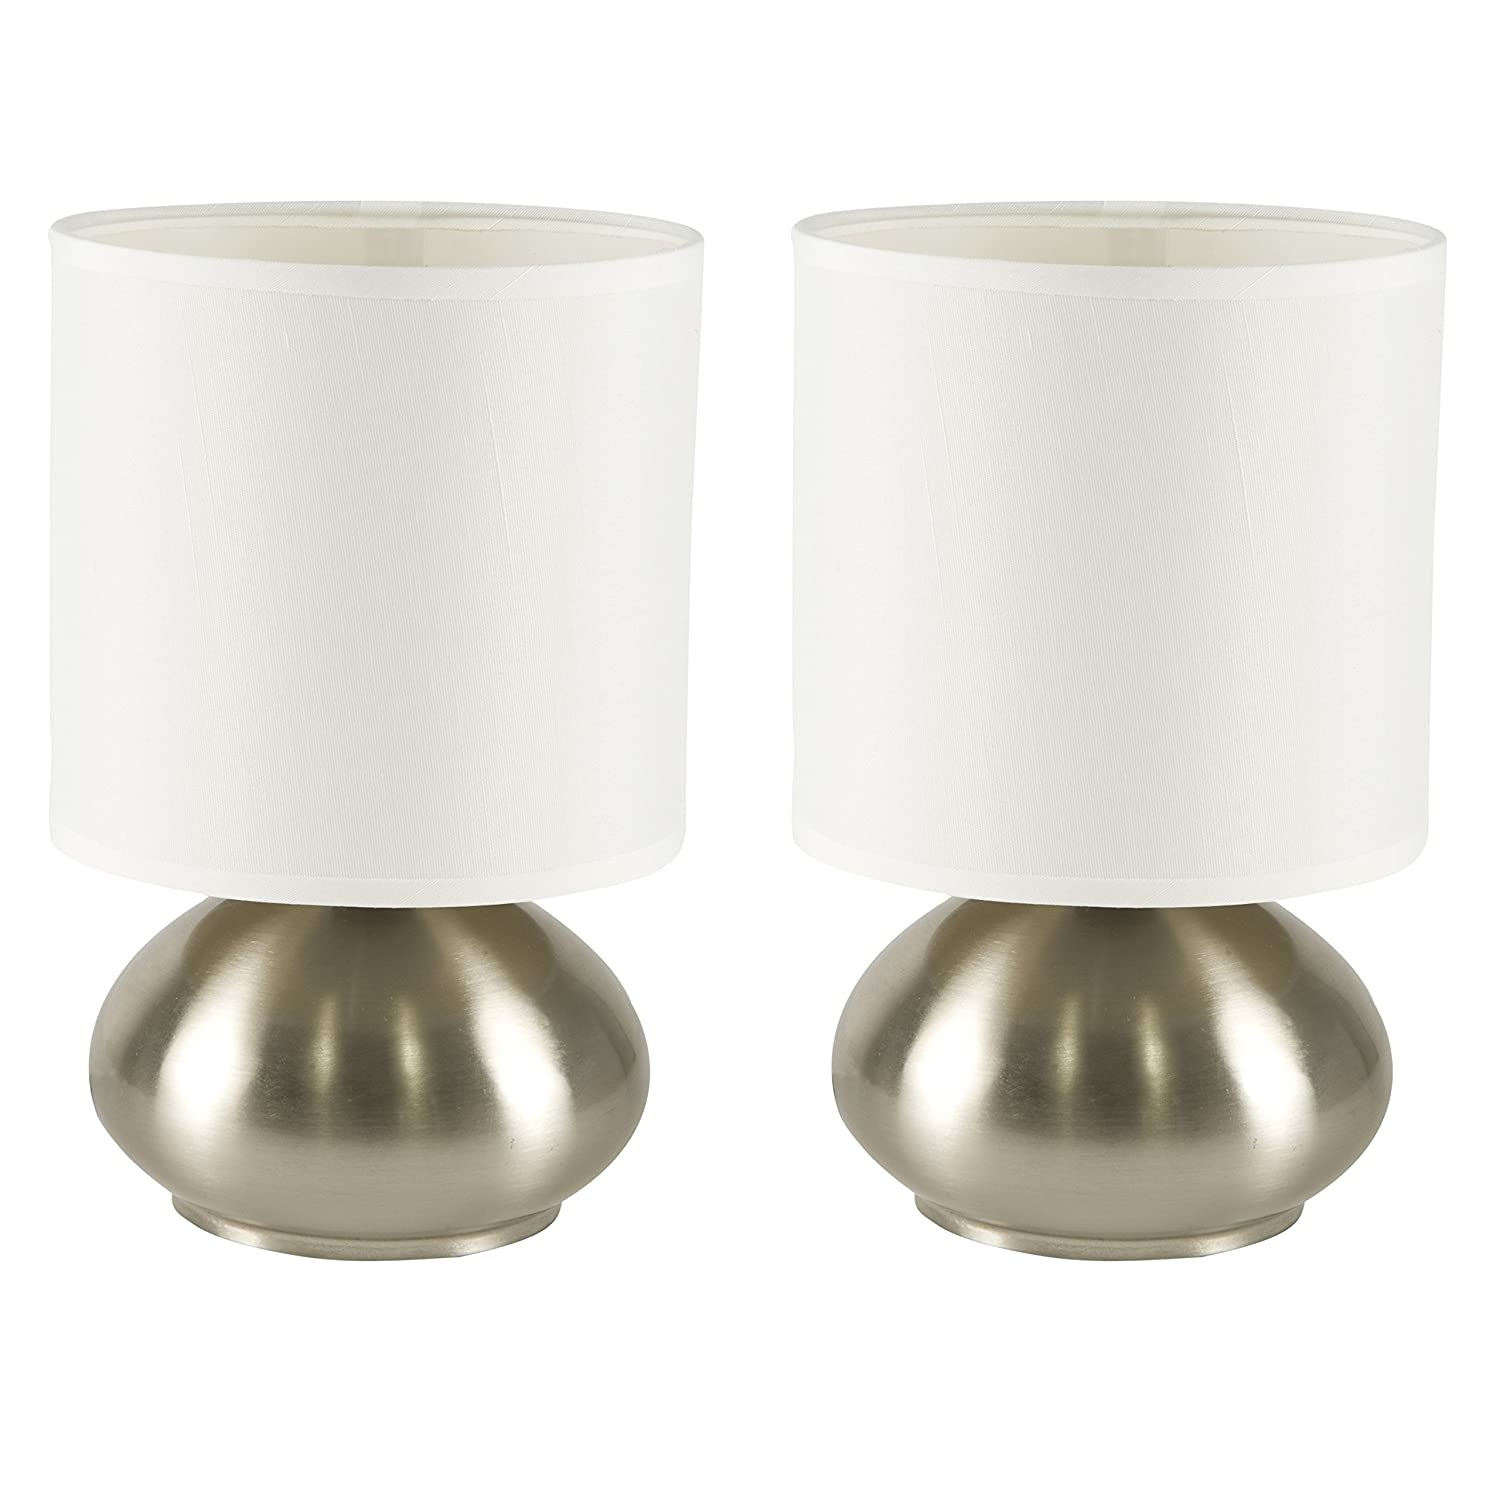 Delightful Light Accents Touch Lamps Set Of 2, Bedroom Side Table Lamps Brushed Nickel  (2 Pack)     Amazon.com